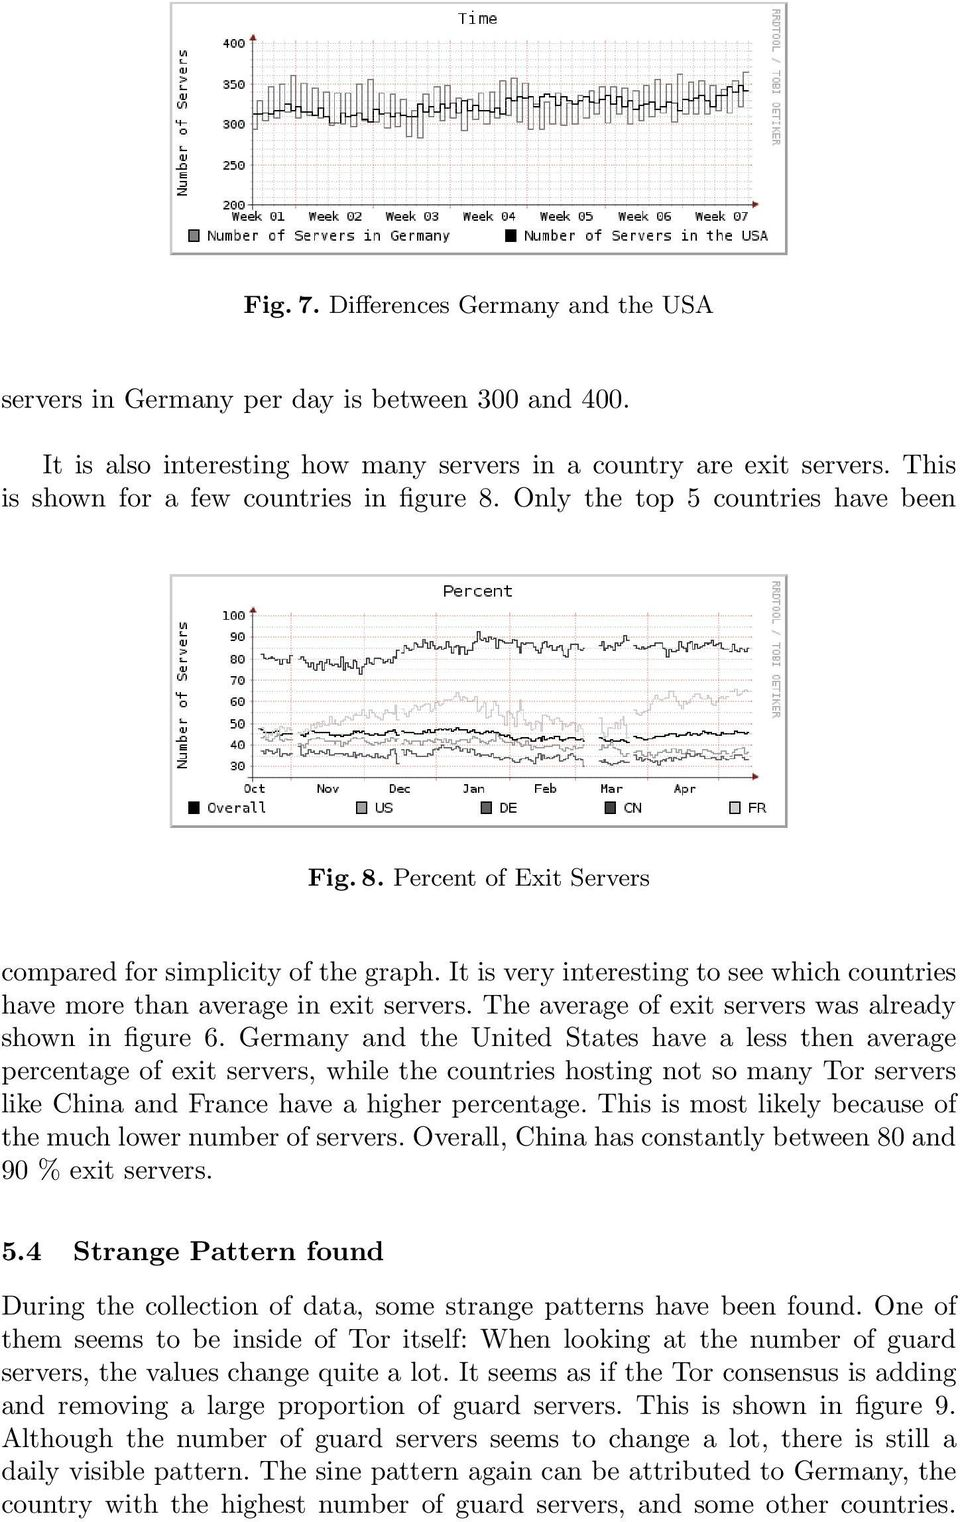 It is very interesting to see which countries have more than average in exit servers. The average of exit servers was already shown in figure 6.